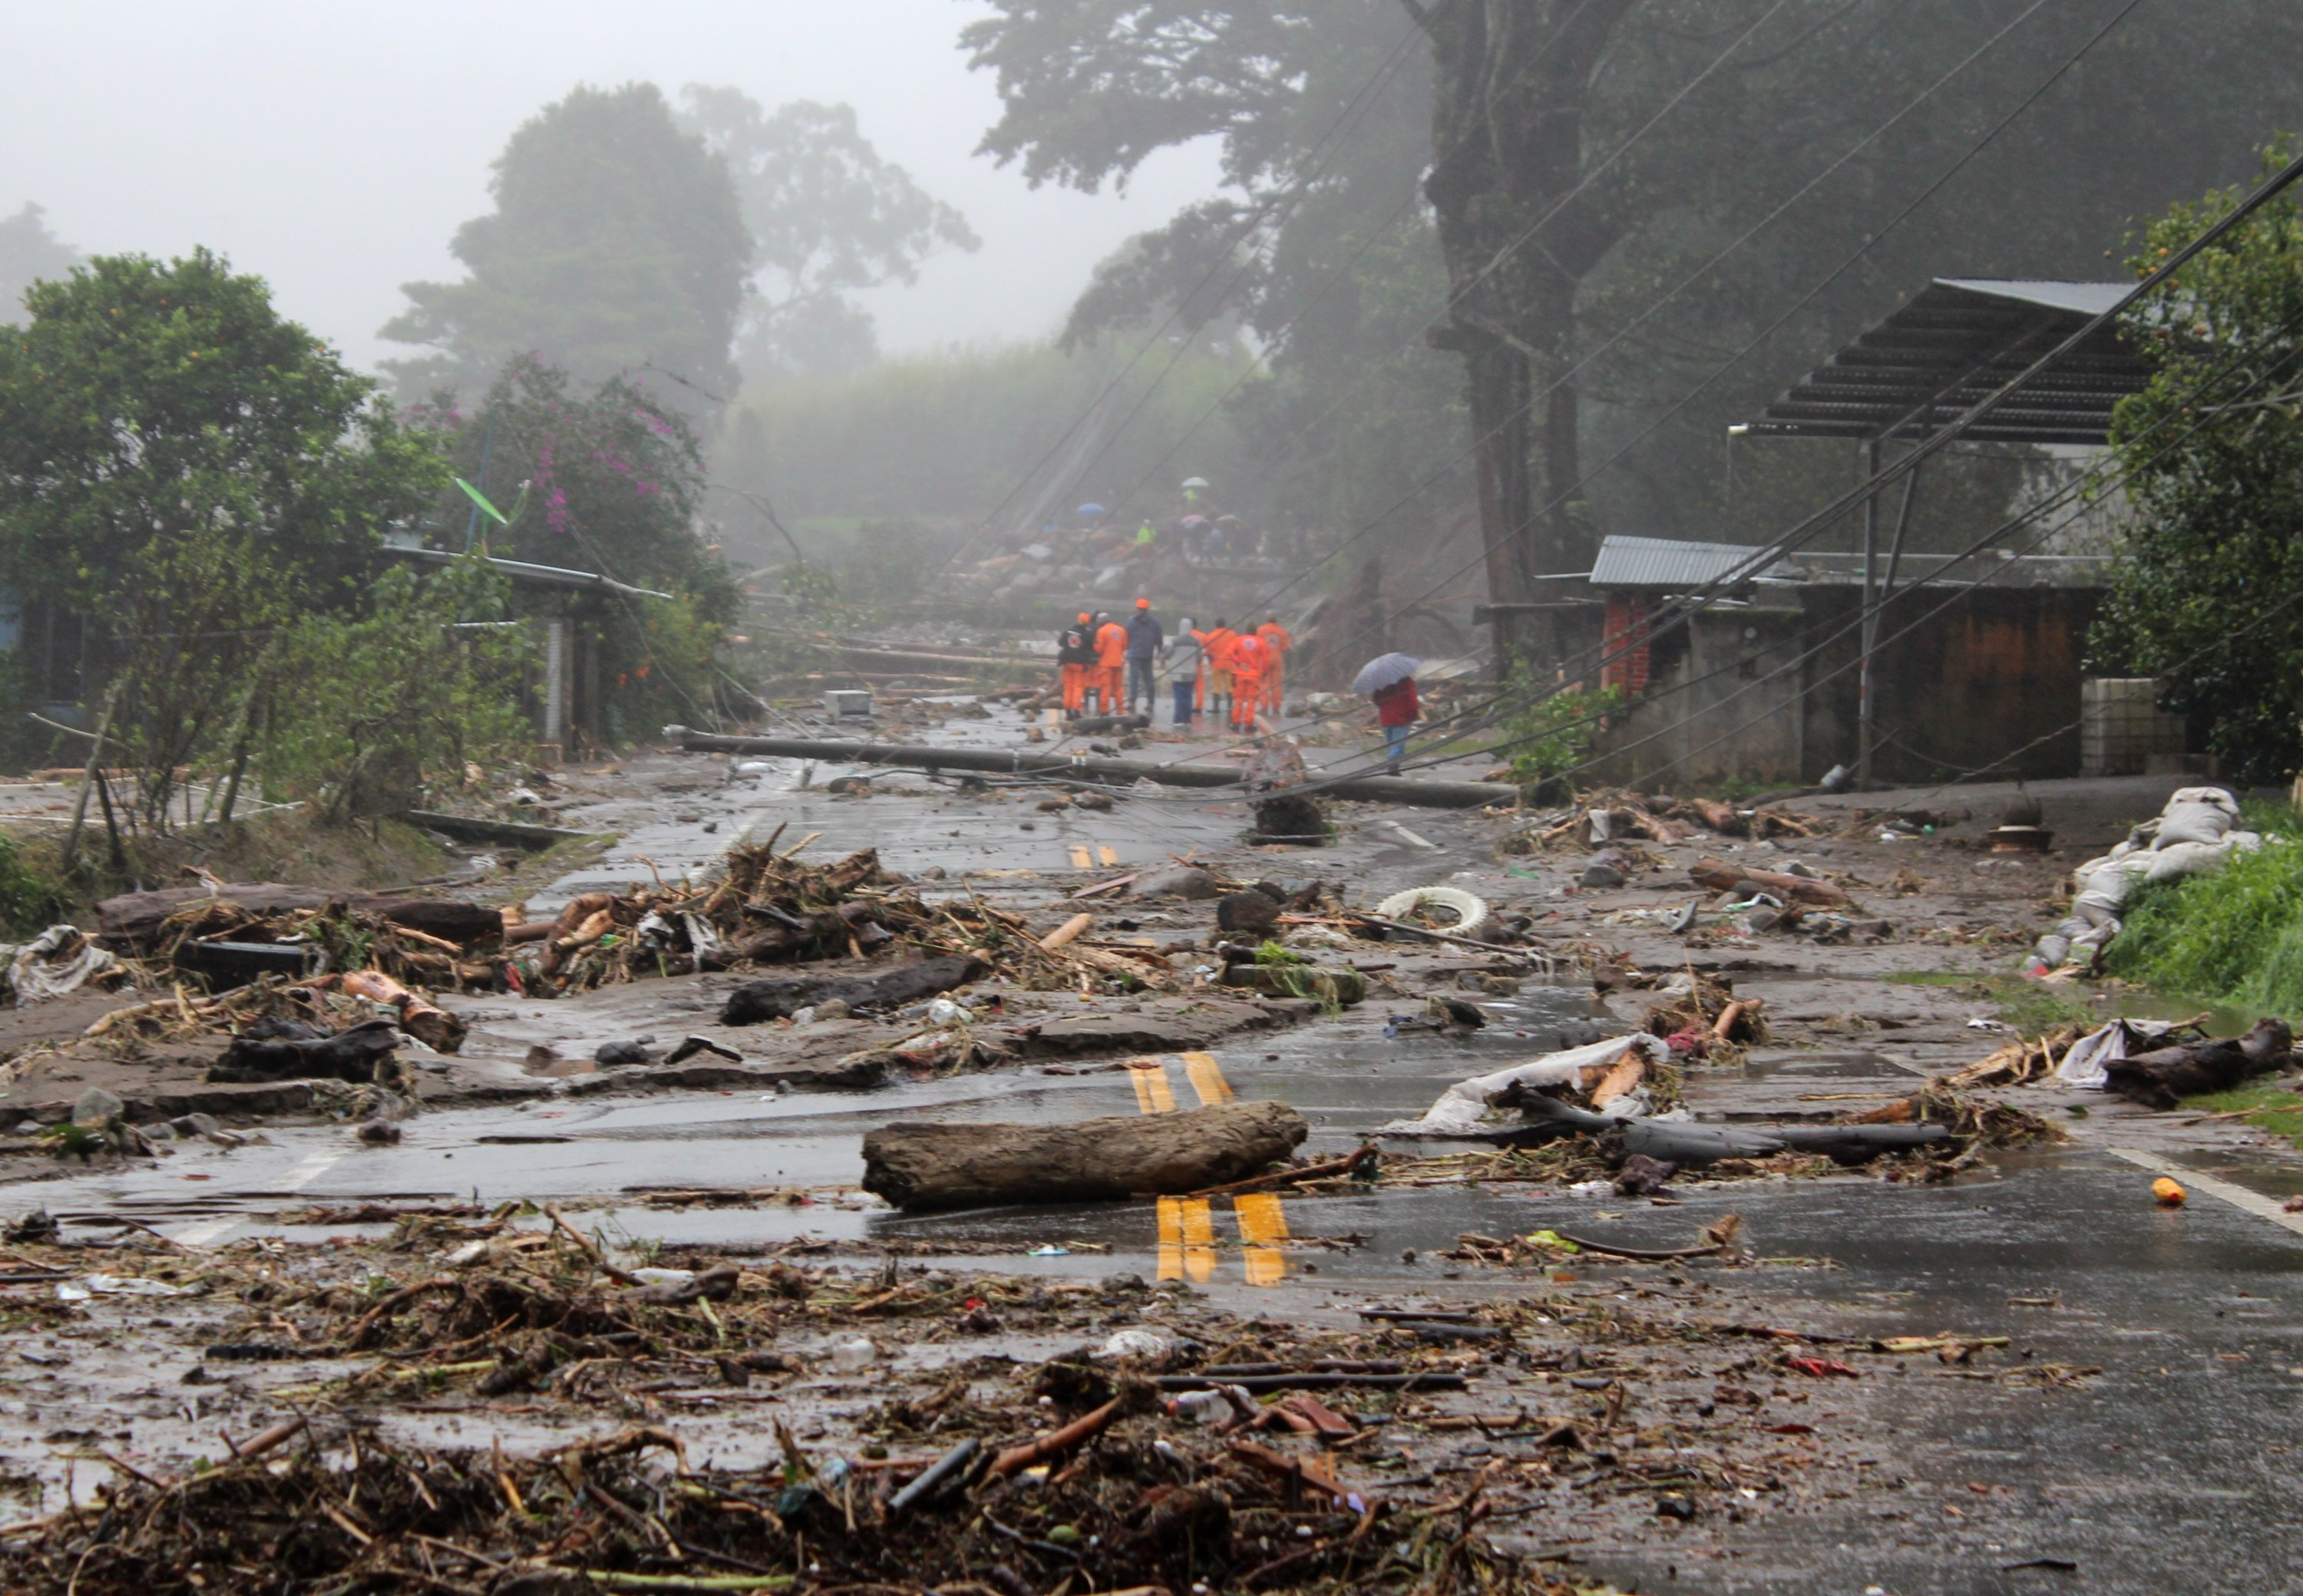 Inhabitants walk through a damaged road after heavy rains associated with the passage of Tropical Depression Eta hit Central America in Chiriqui, Panama, Nov. 5, 2020. (EPA Photo)